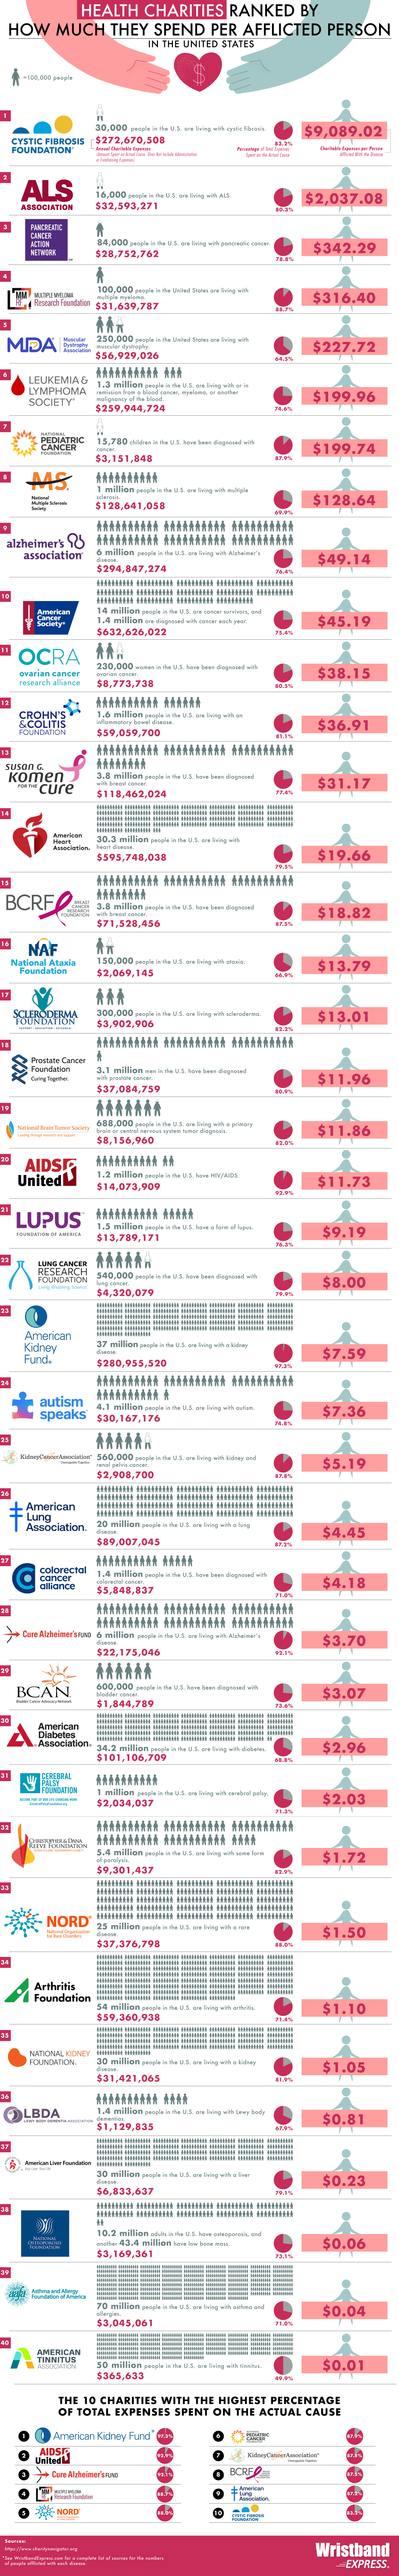 The Health Charities That Spend the Most per Afflicted Person